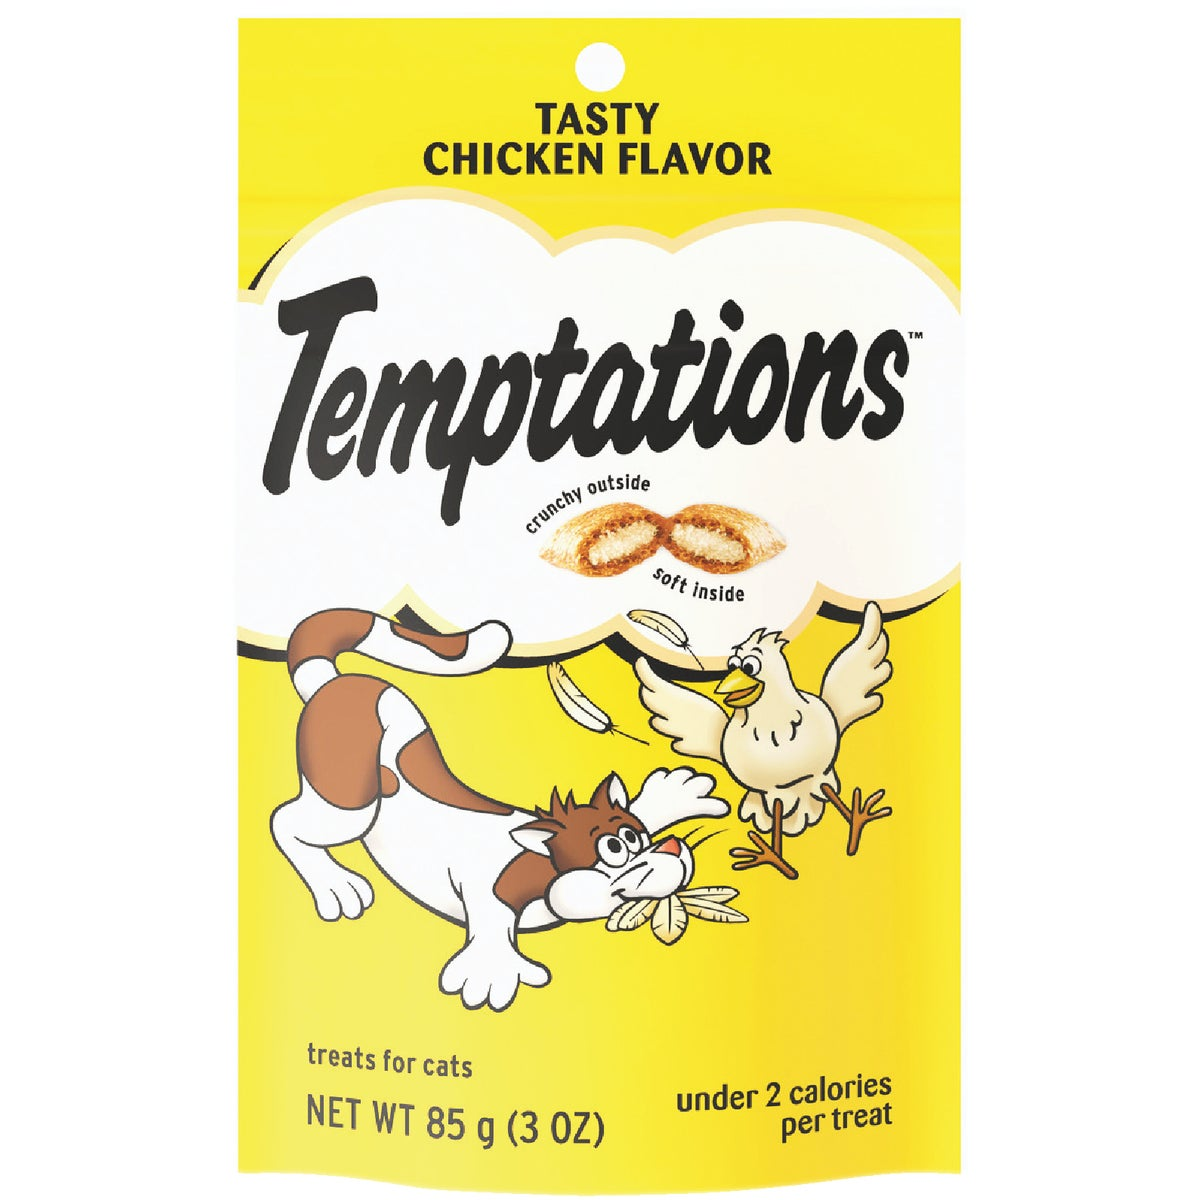 3OZ CHIC TEMPT CAT TREAT - 72306 by Mars Pedigree